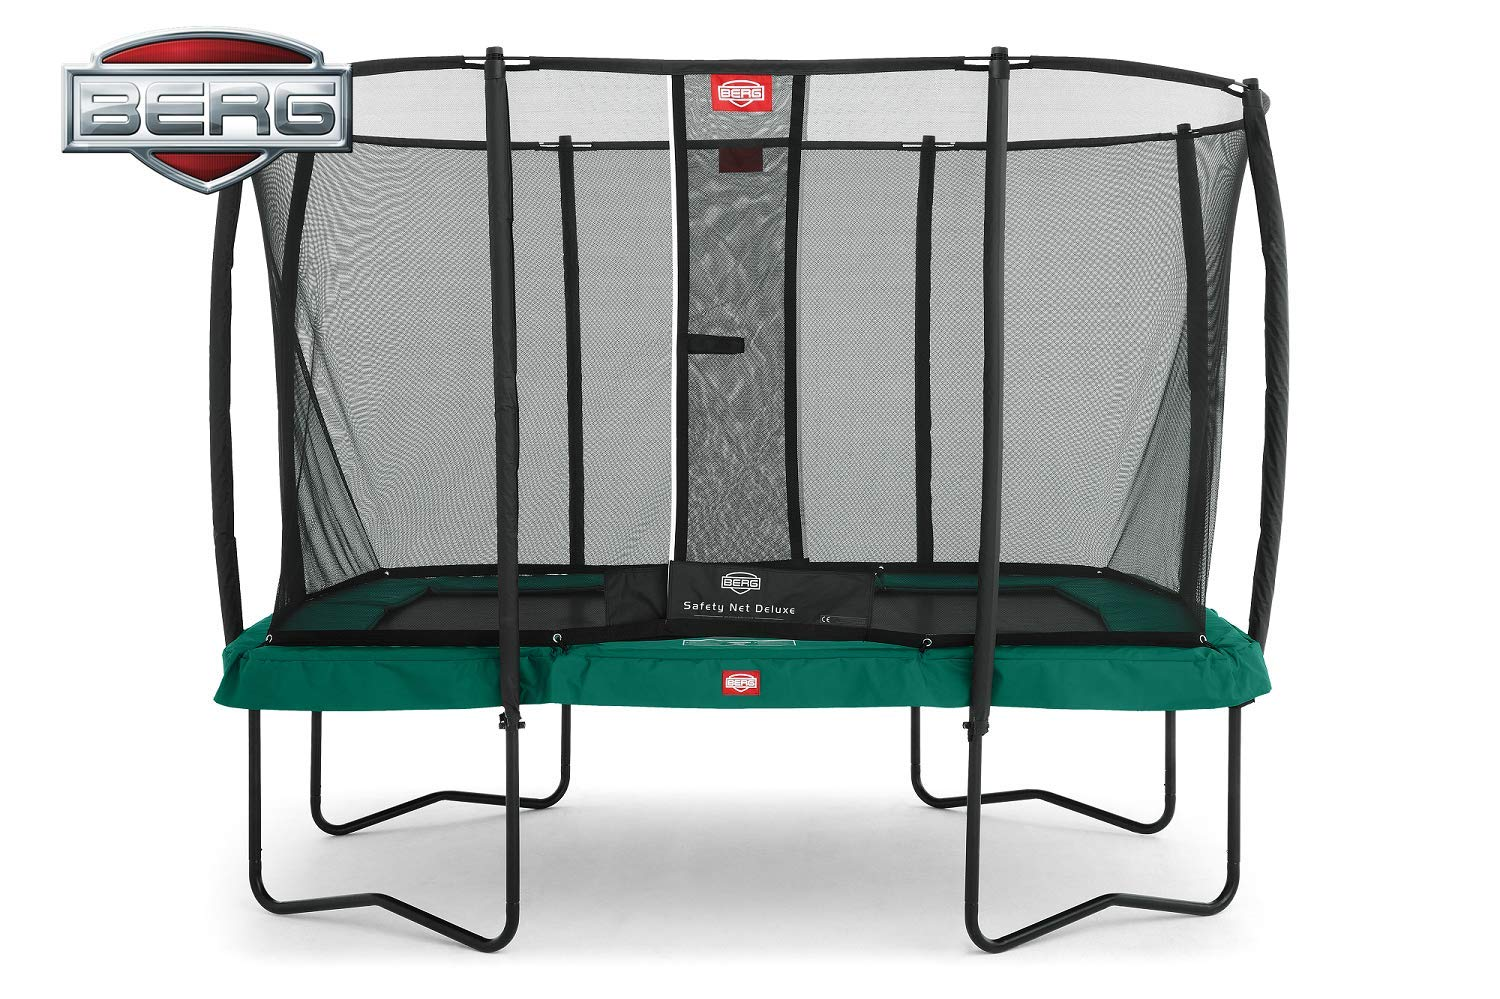 BERG Eazyfit Regular Trampoline + Safety Net Deluxe Rectangular ...